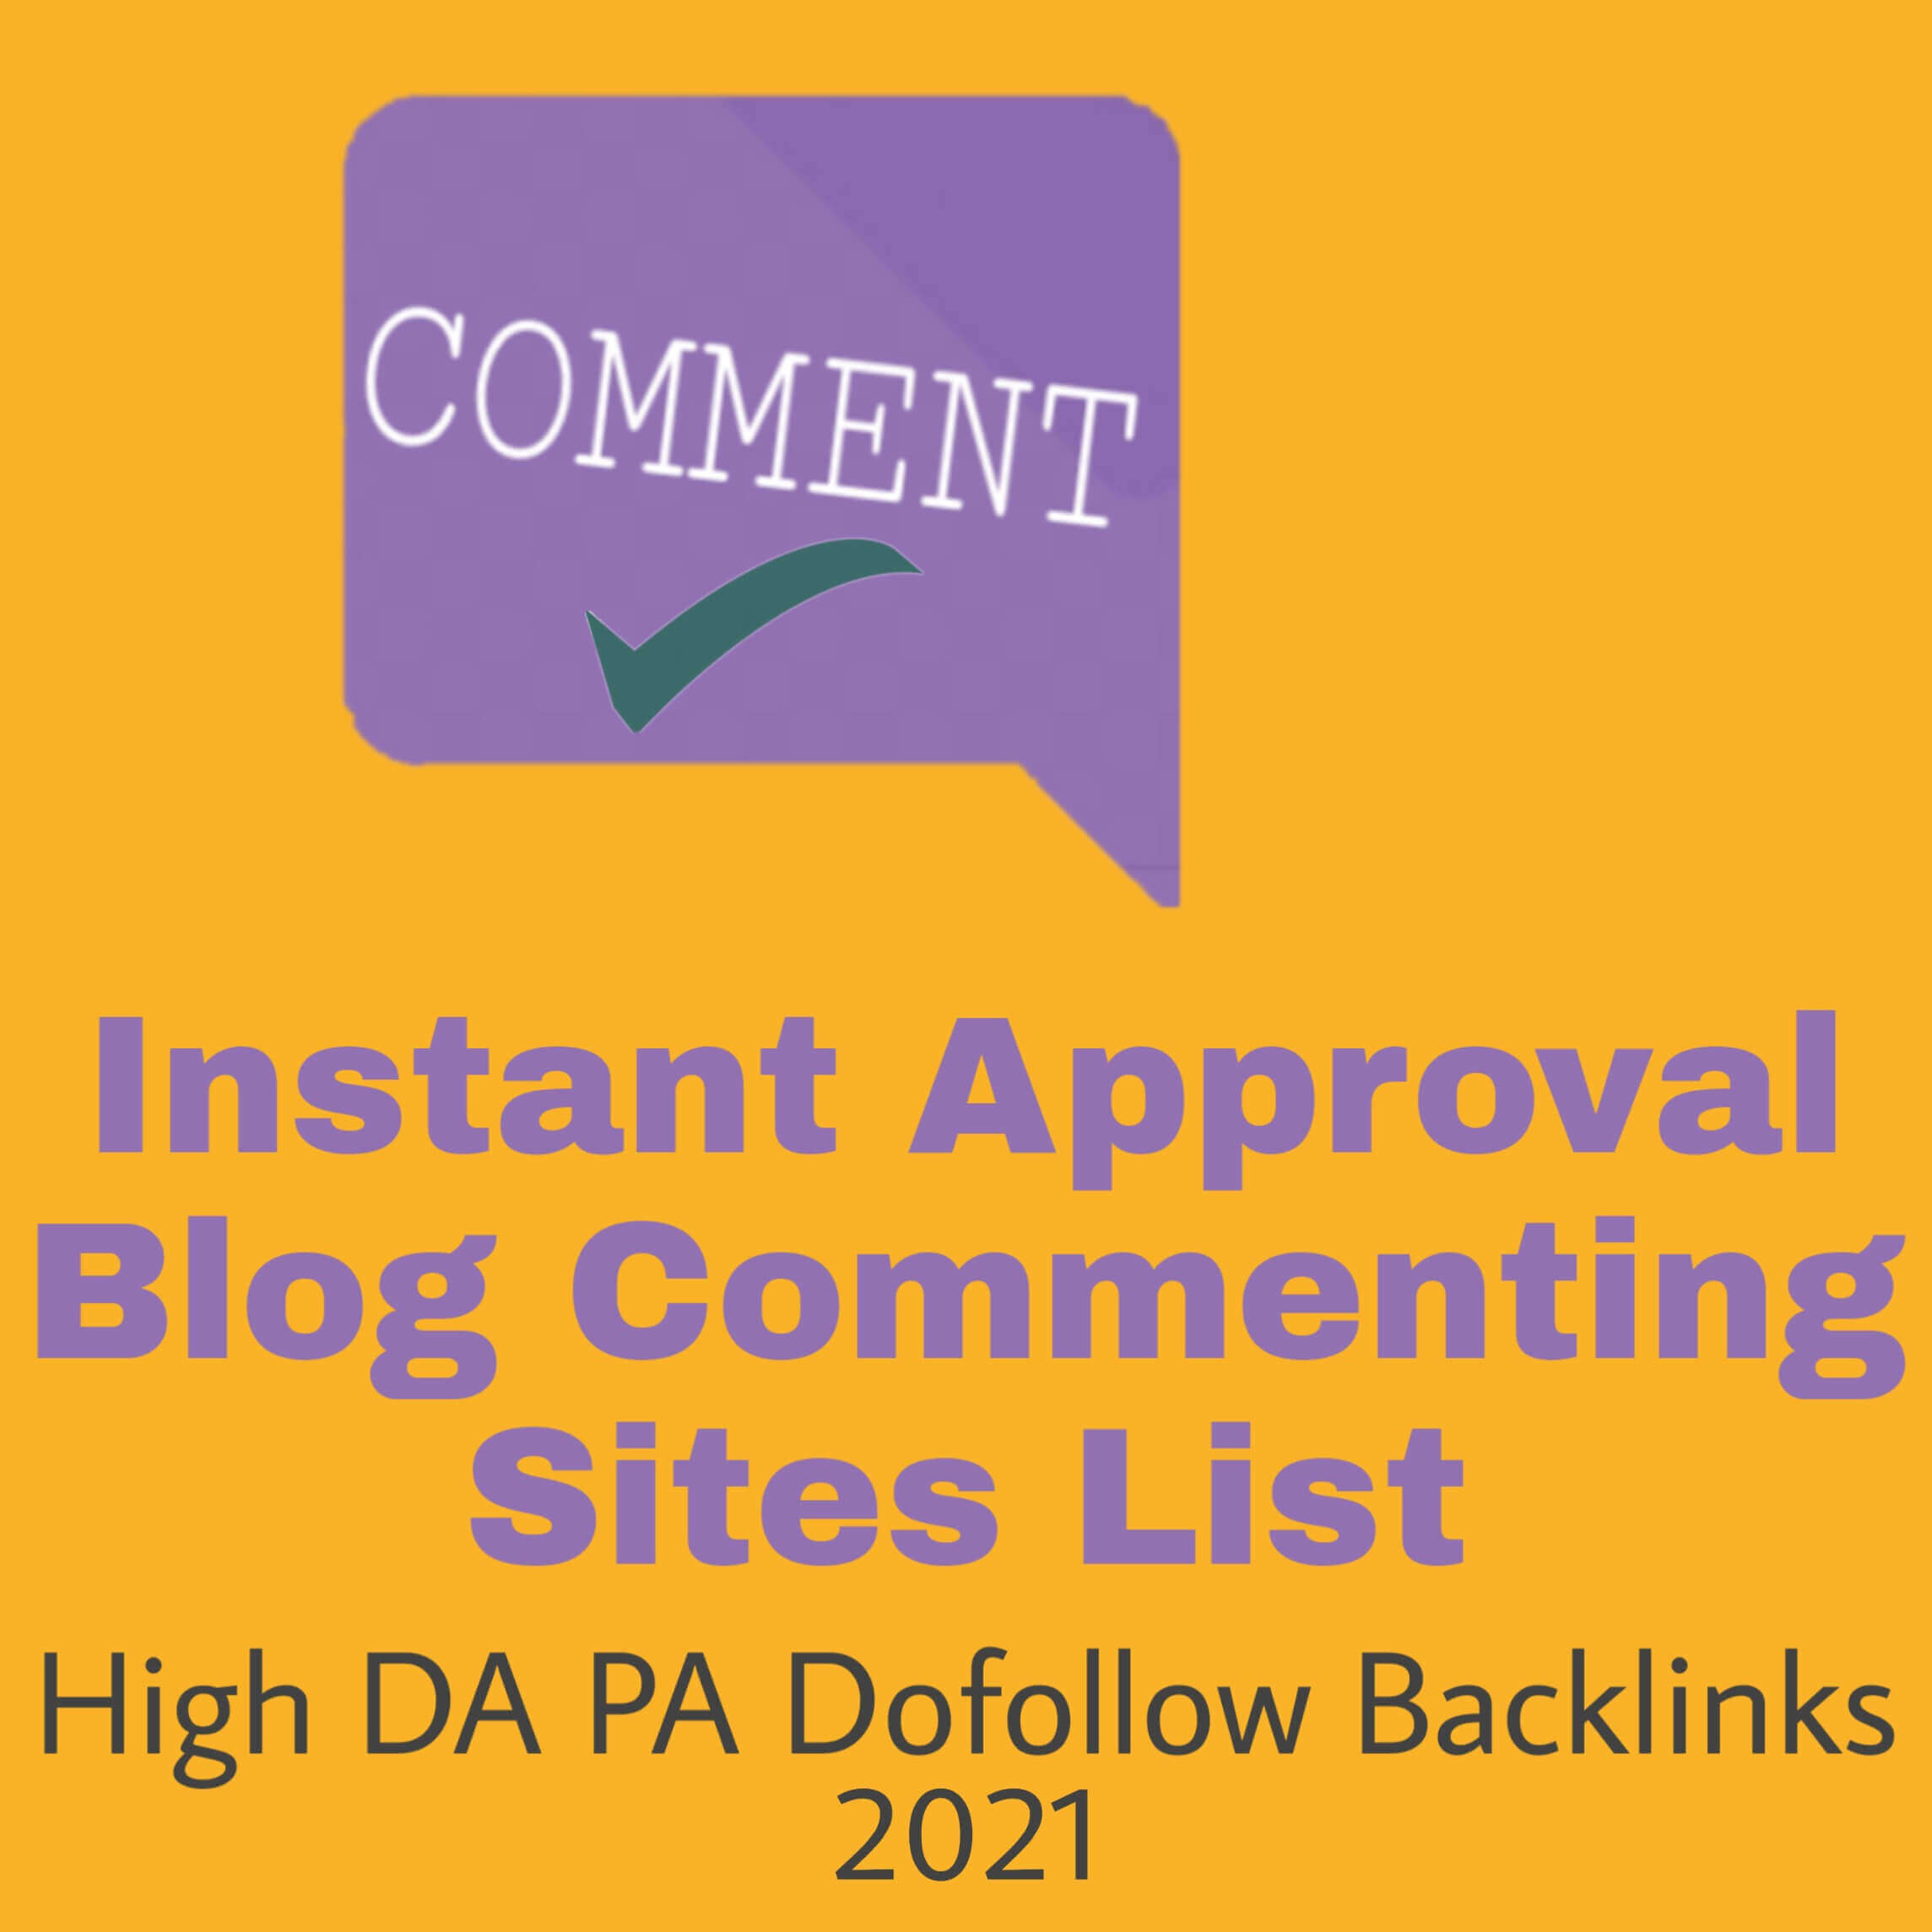 Instant Approval Blog Commenting Sites List High DA PA Dofollow Backlinks